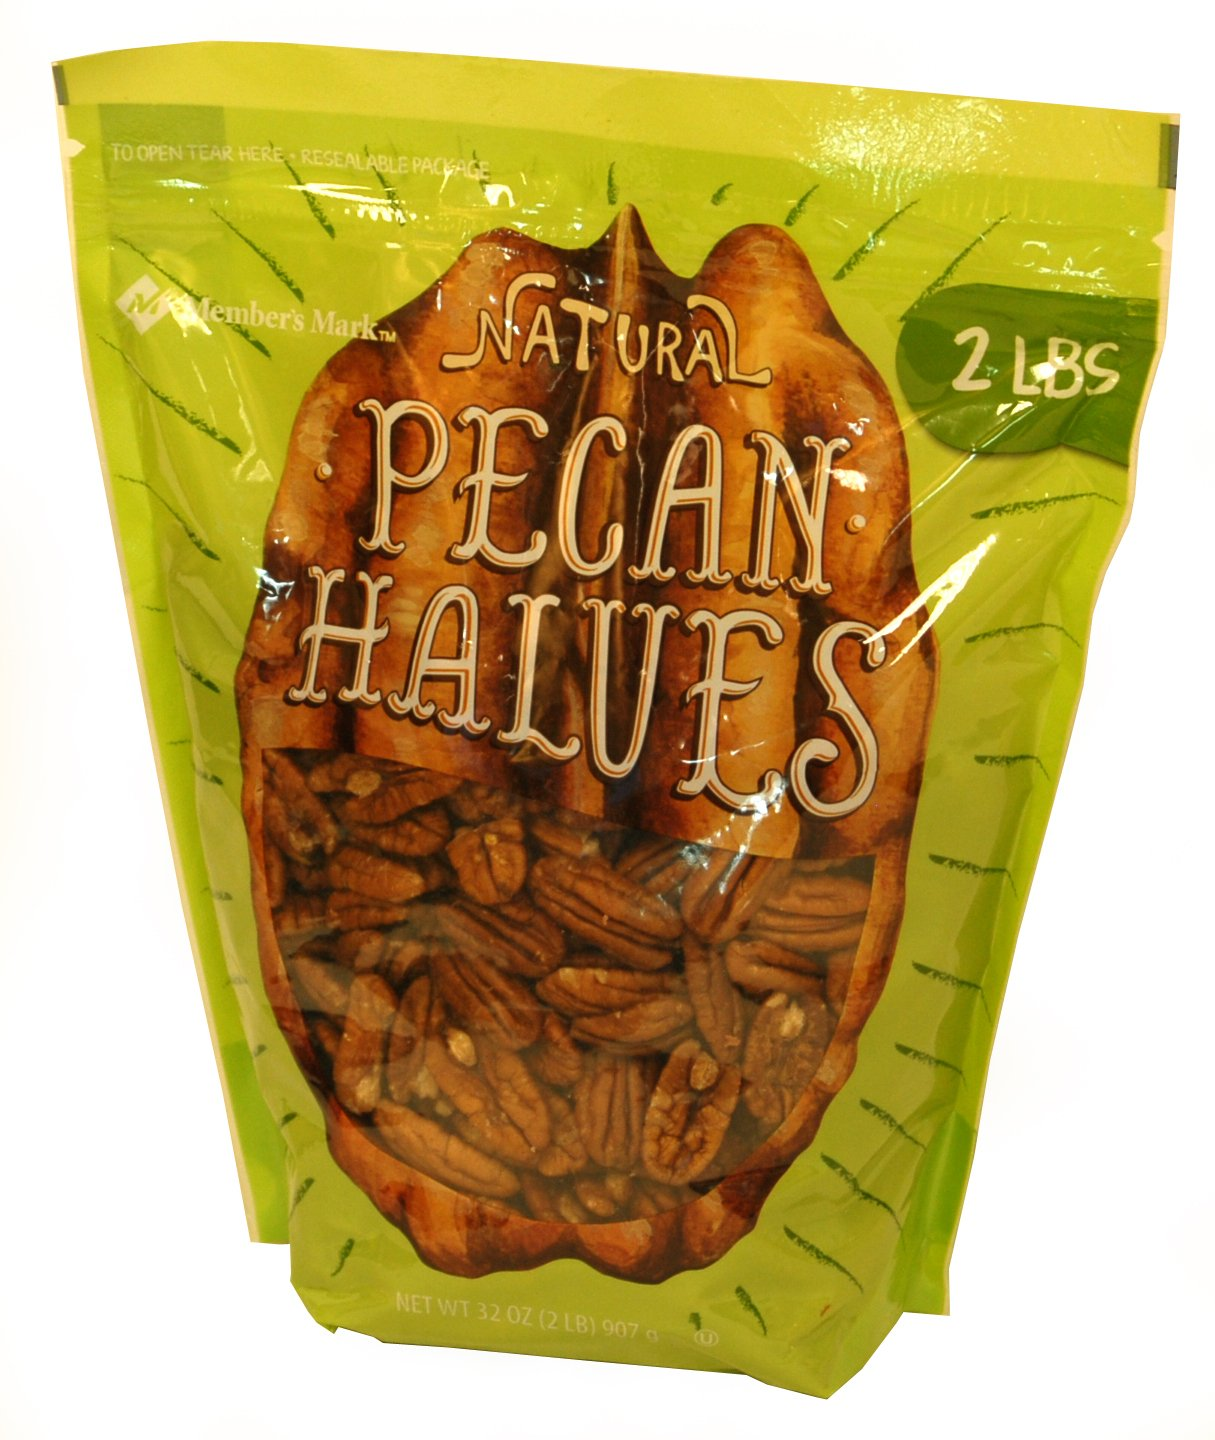 Natural Pecan Havles - 2 lbs. - Approximately 8 cups by American Standart